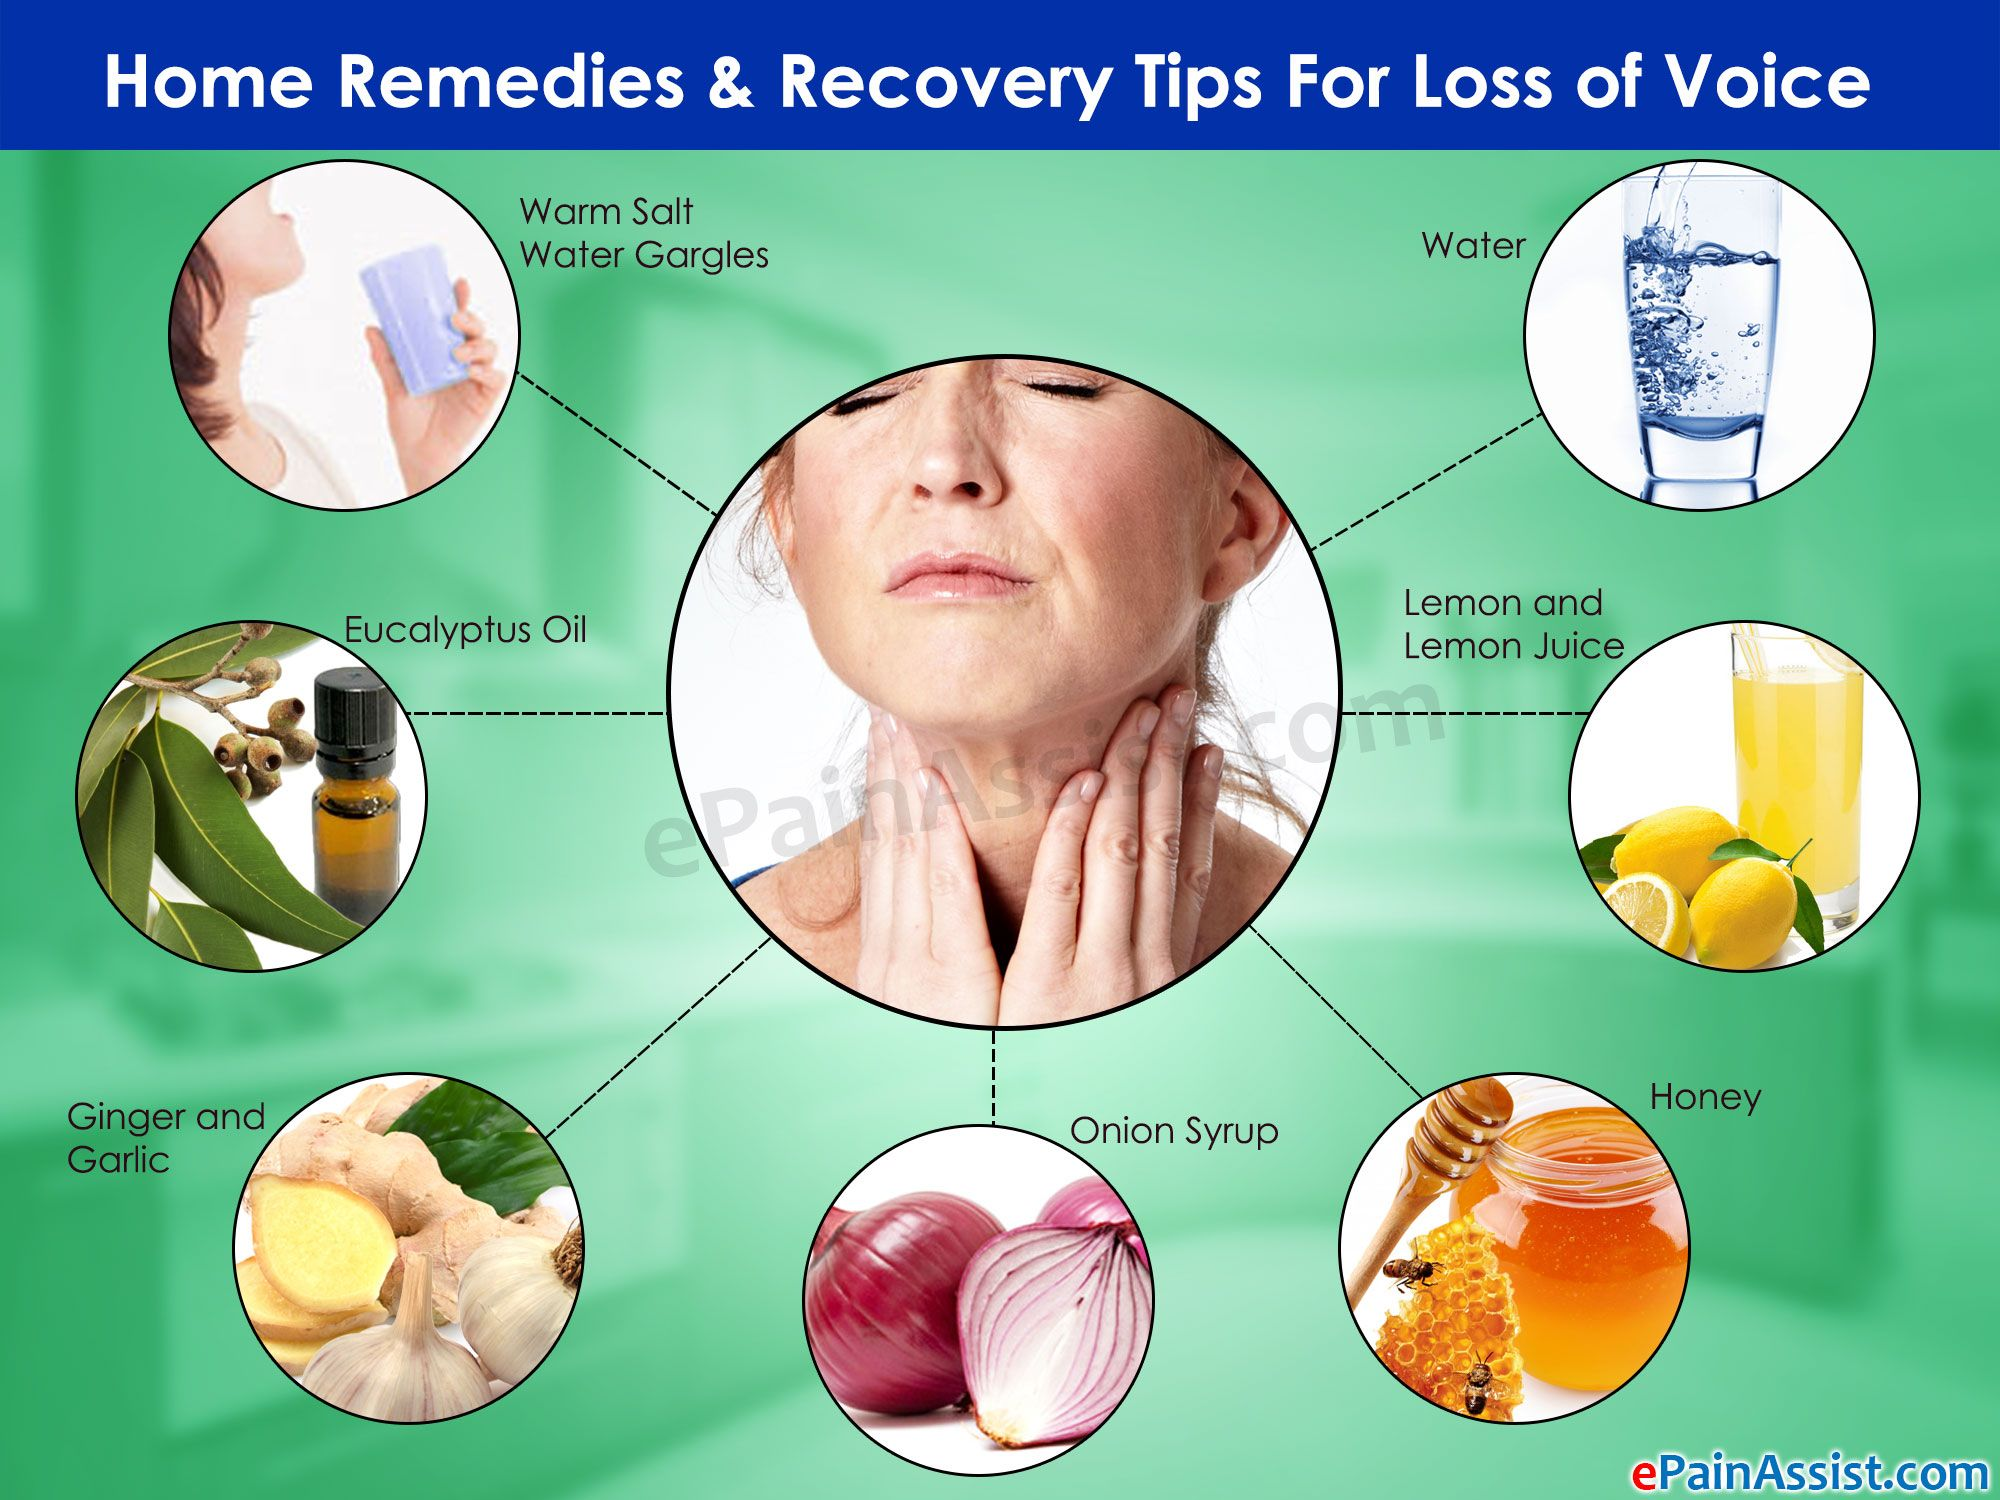 Home Remedies If You Lost Your Voice